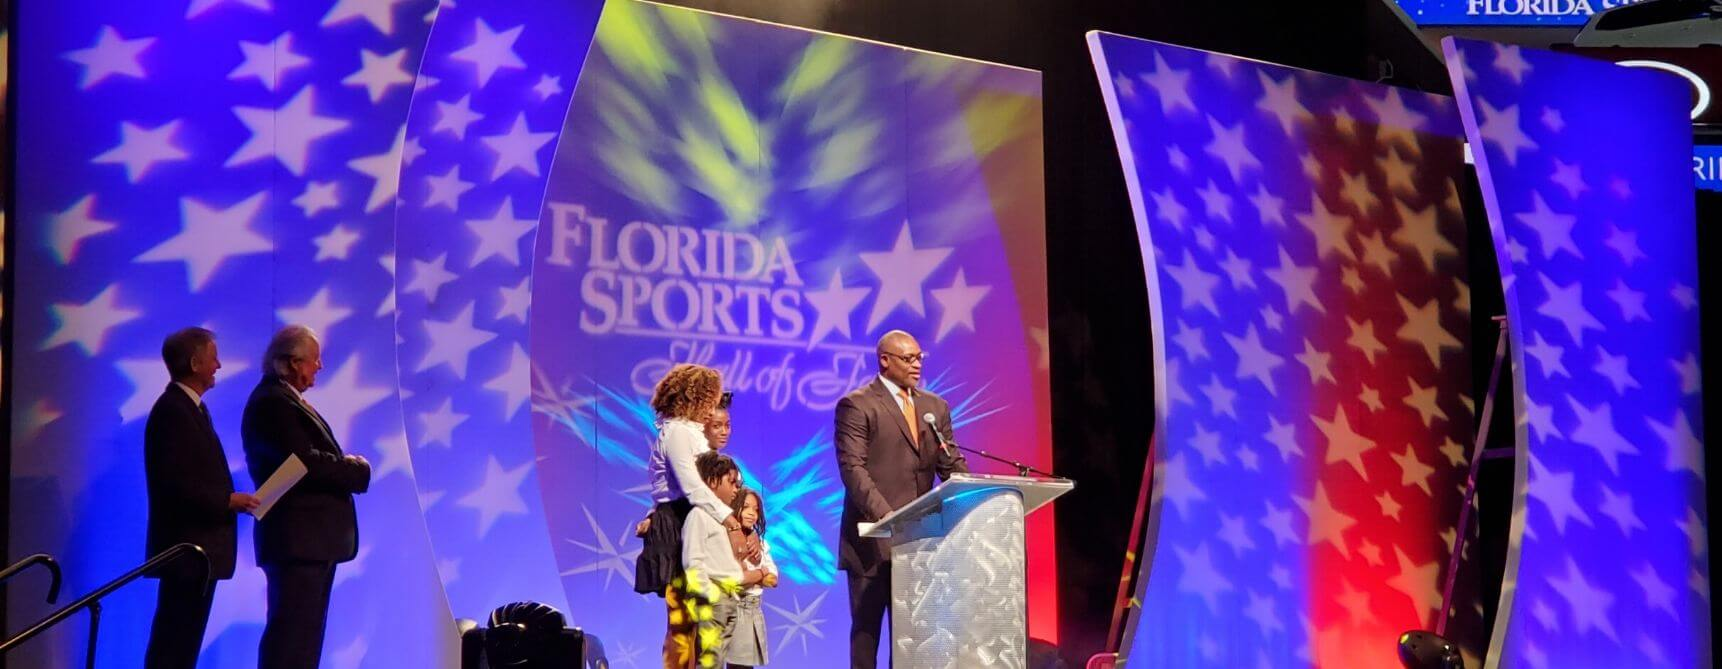 6 Florida Sports Awards Ceremony Event